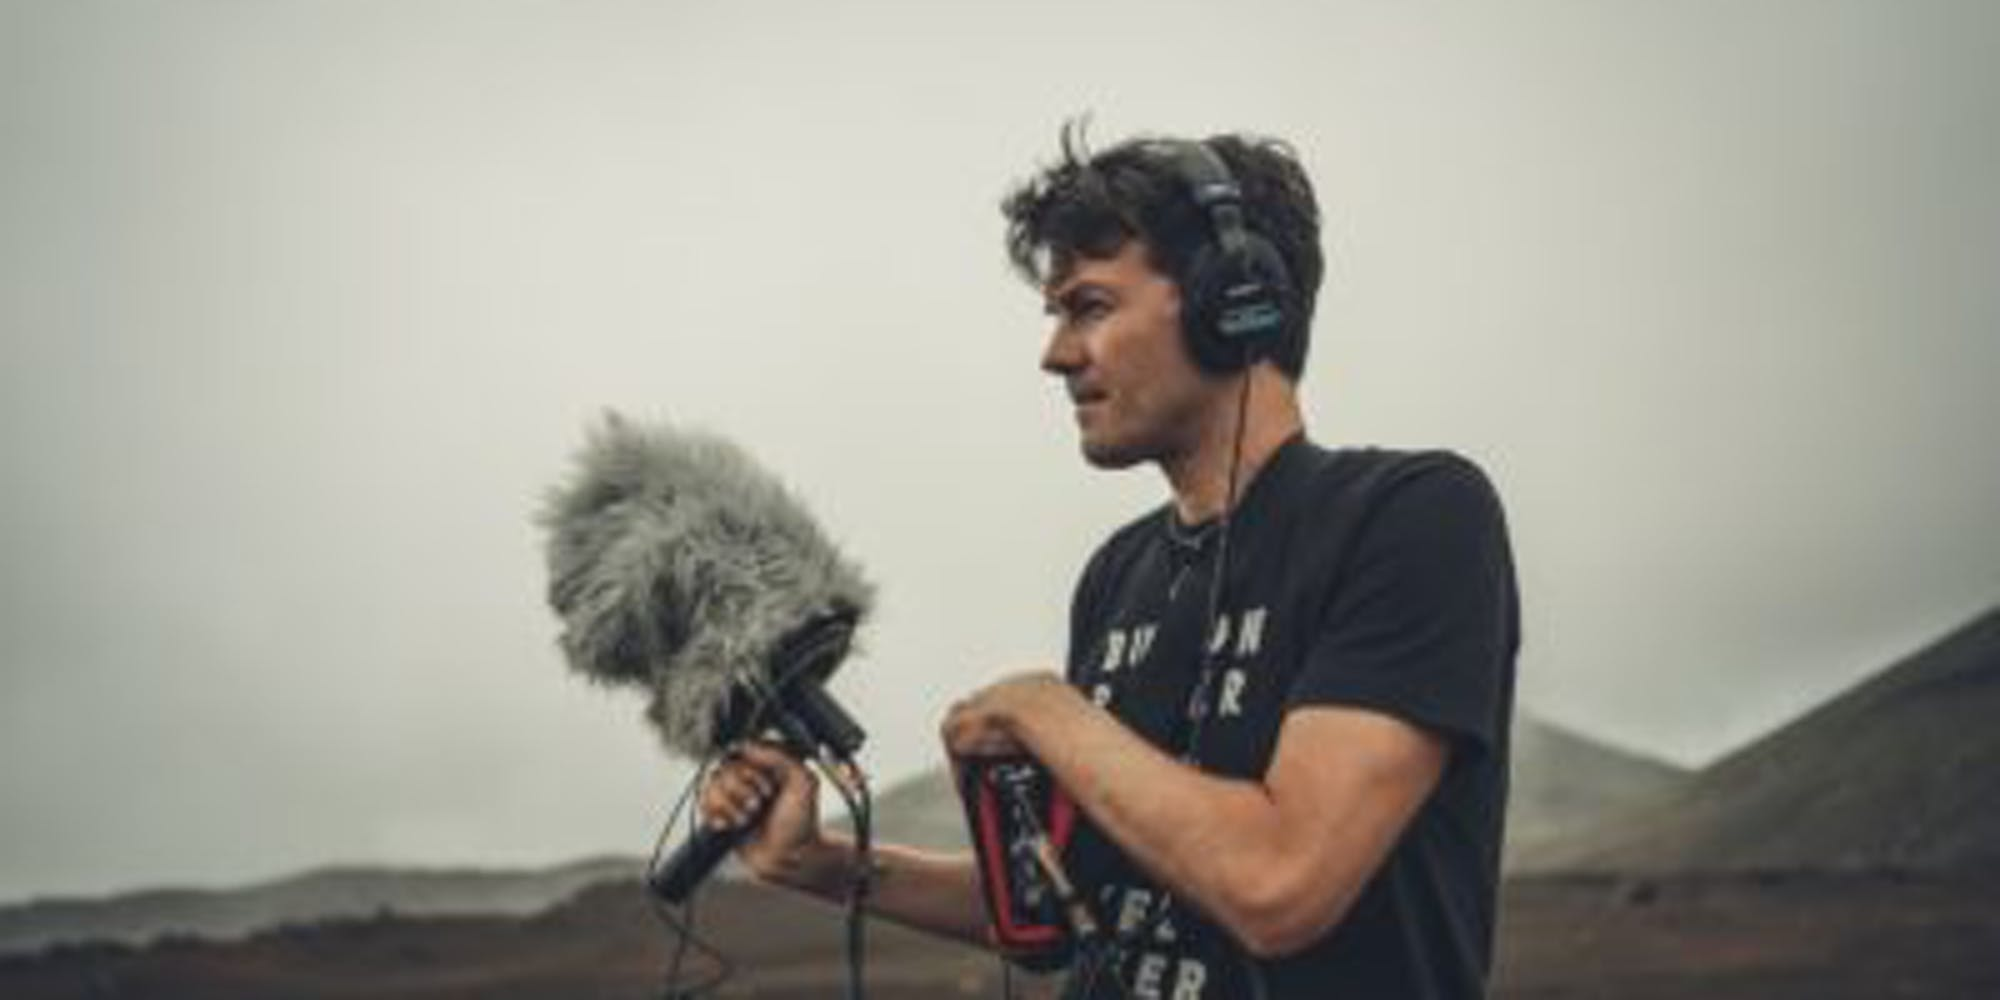 Man holding a boom mike prepared to record audio